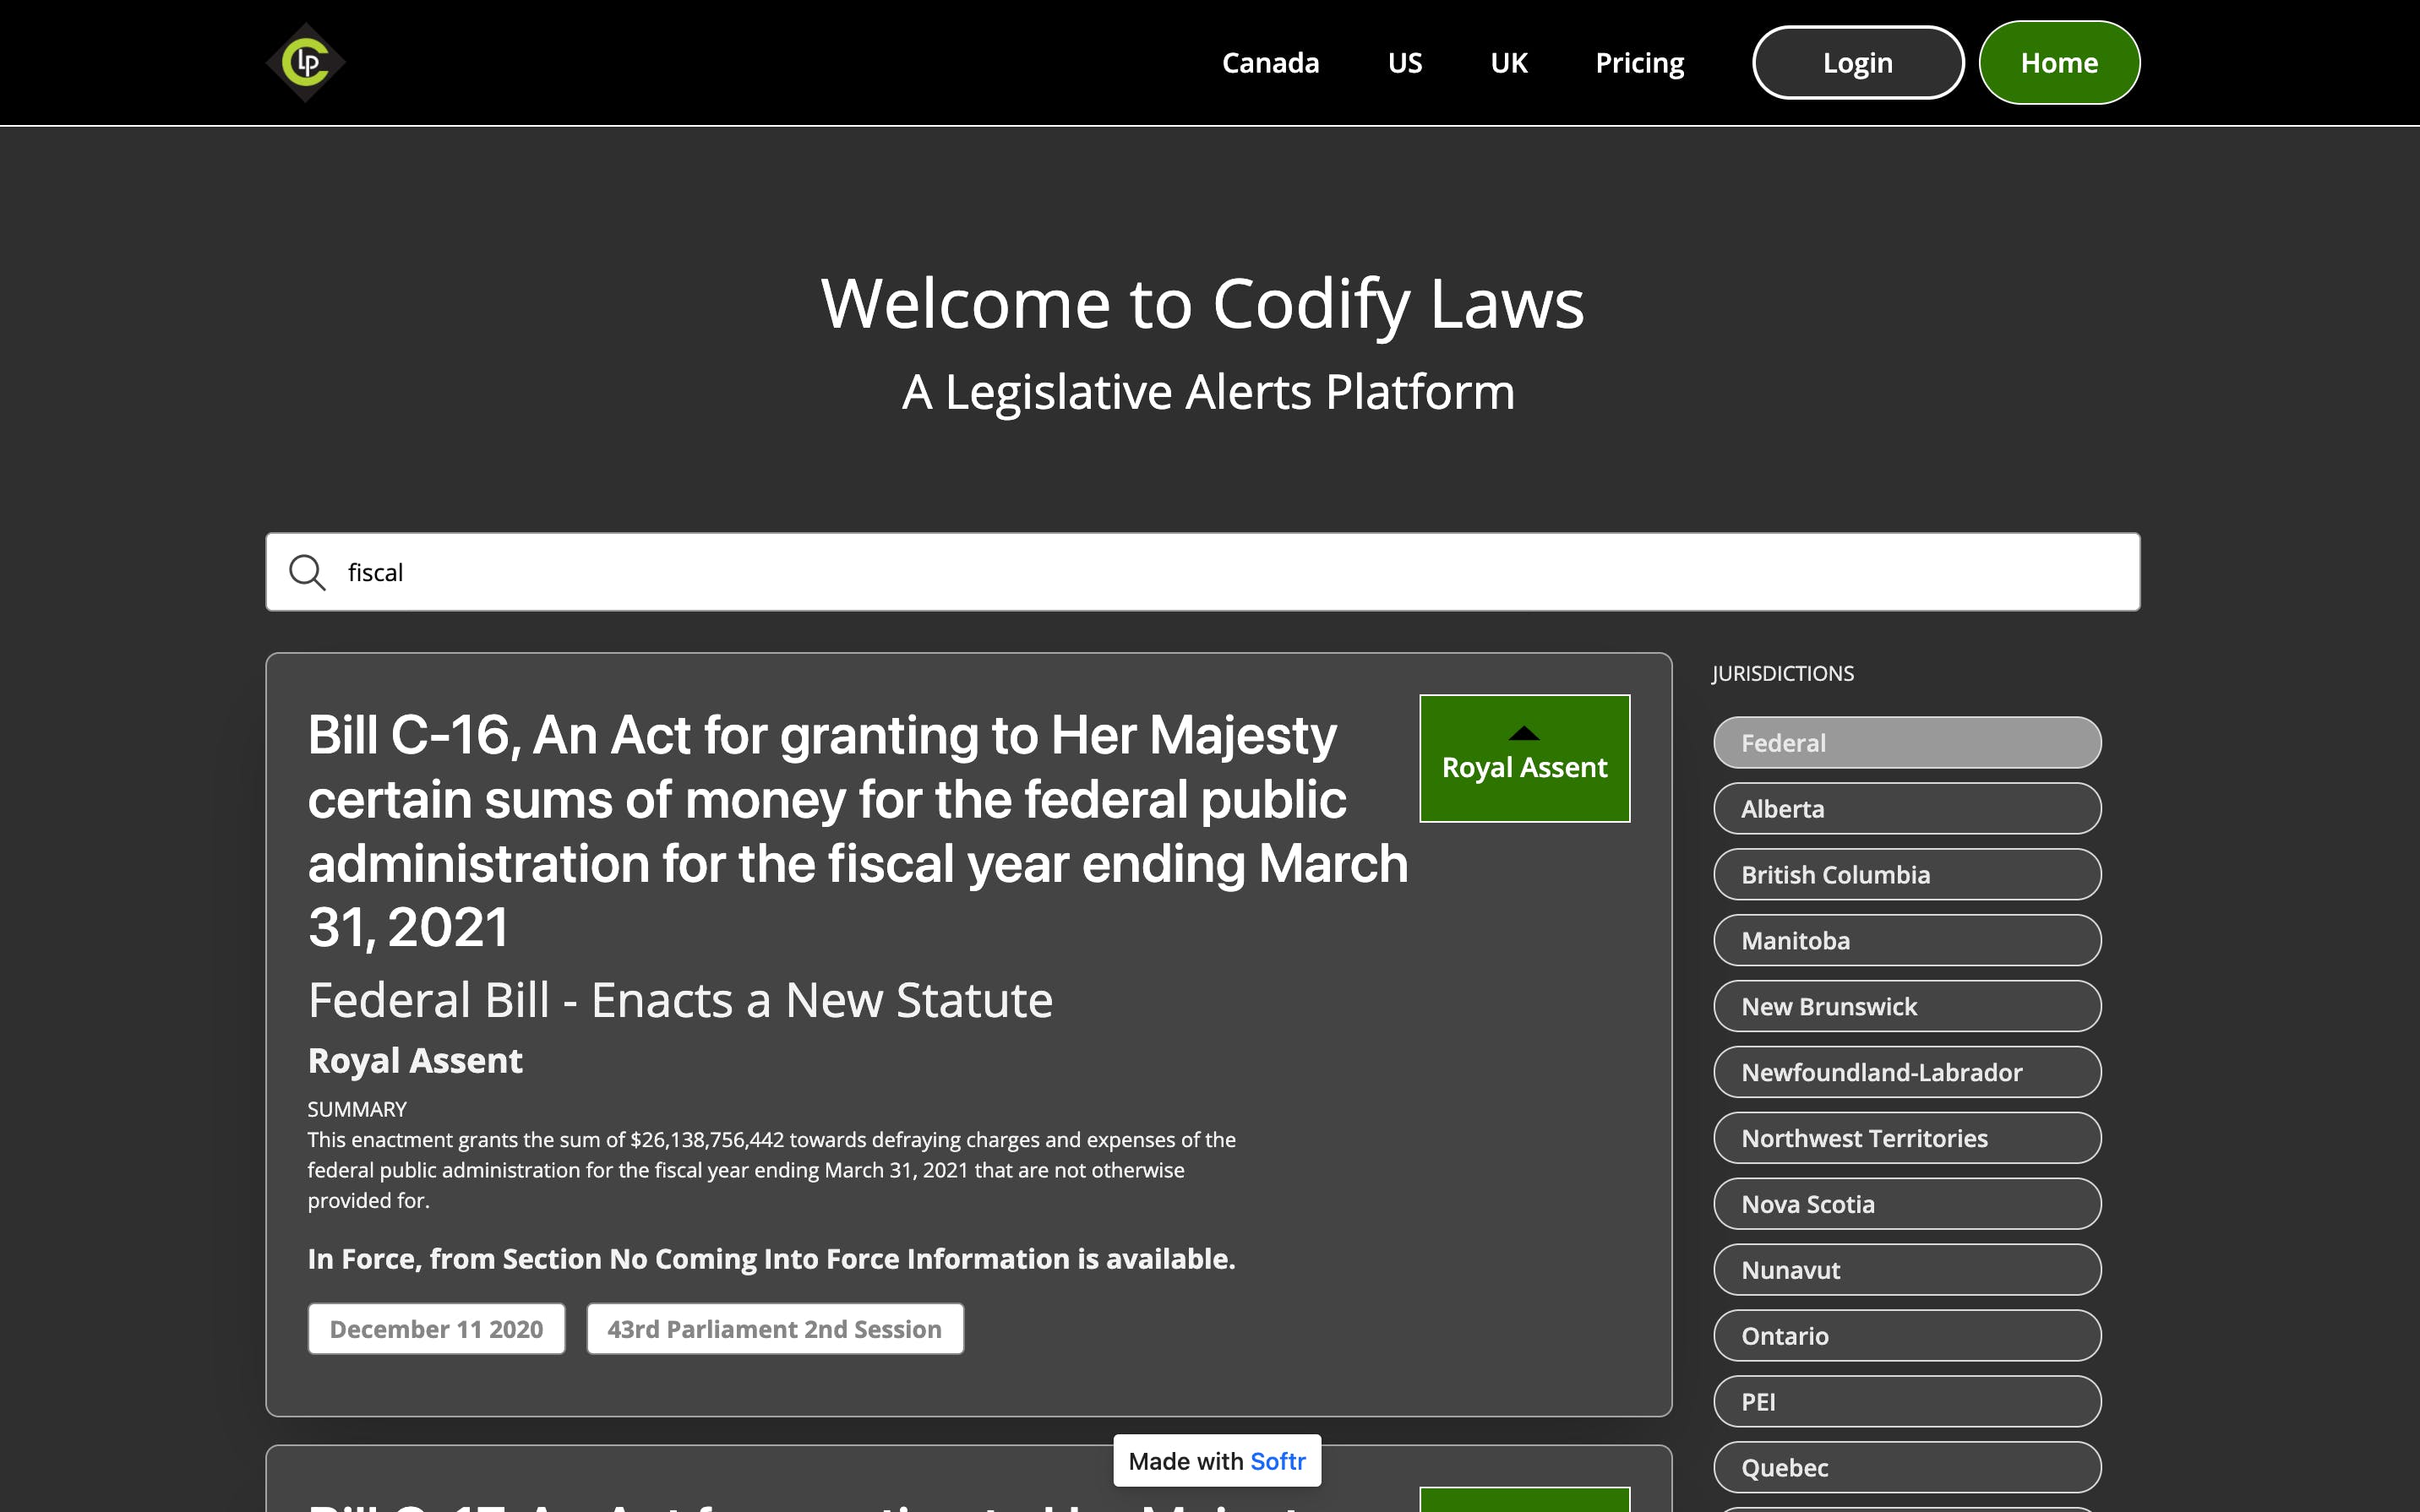 Codify Laws